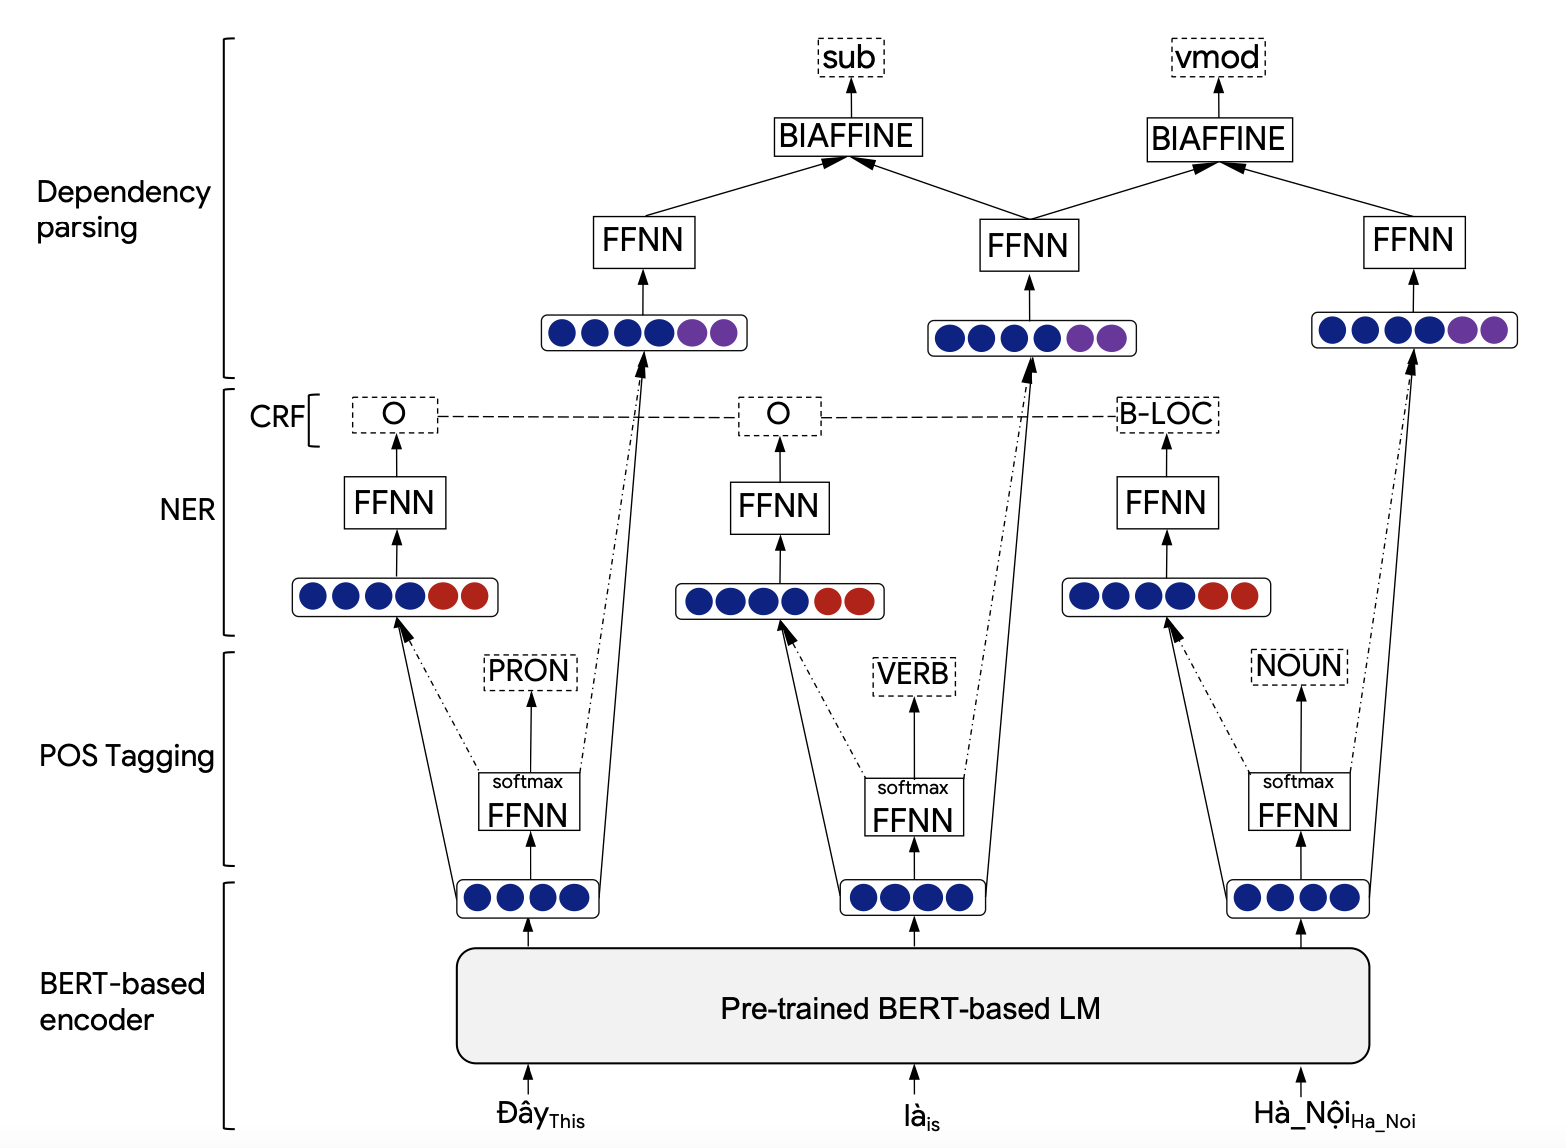 PhoNLP: A joint multi-task learning model for Vietnamese part-of-speech tagging, named entity recognition and dependency parsing